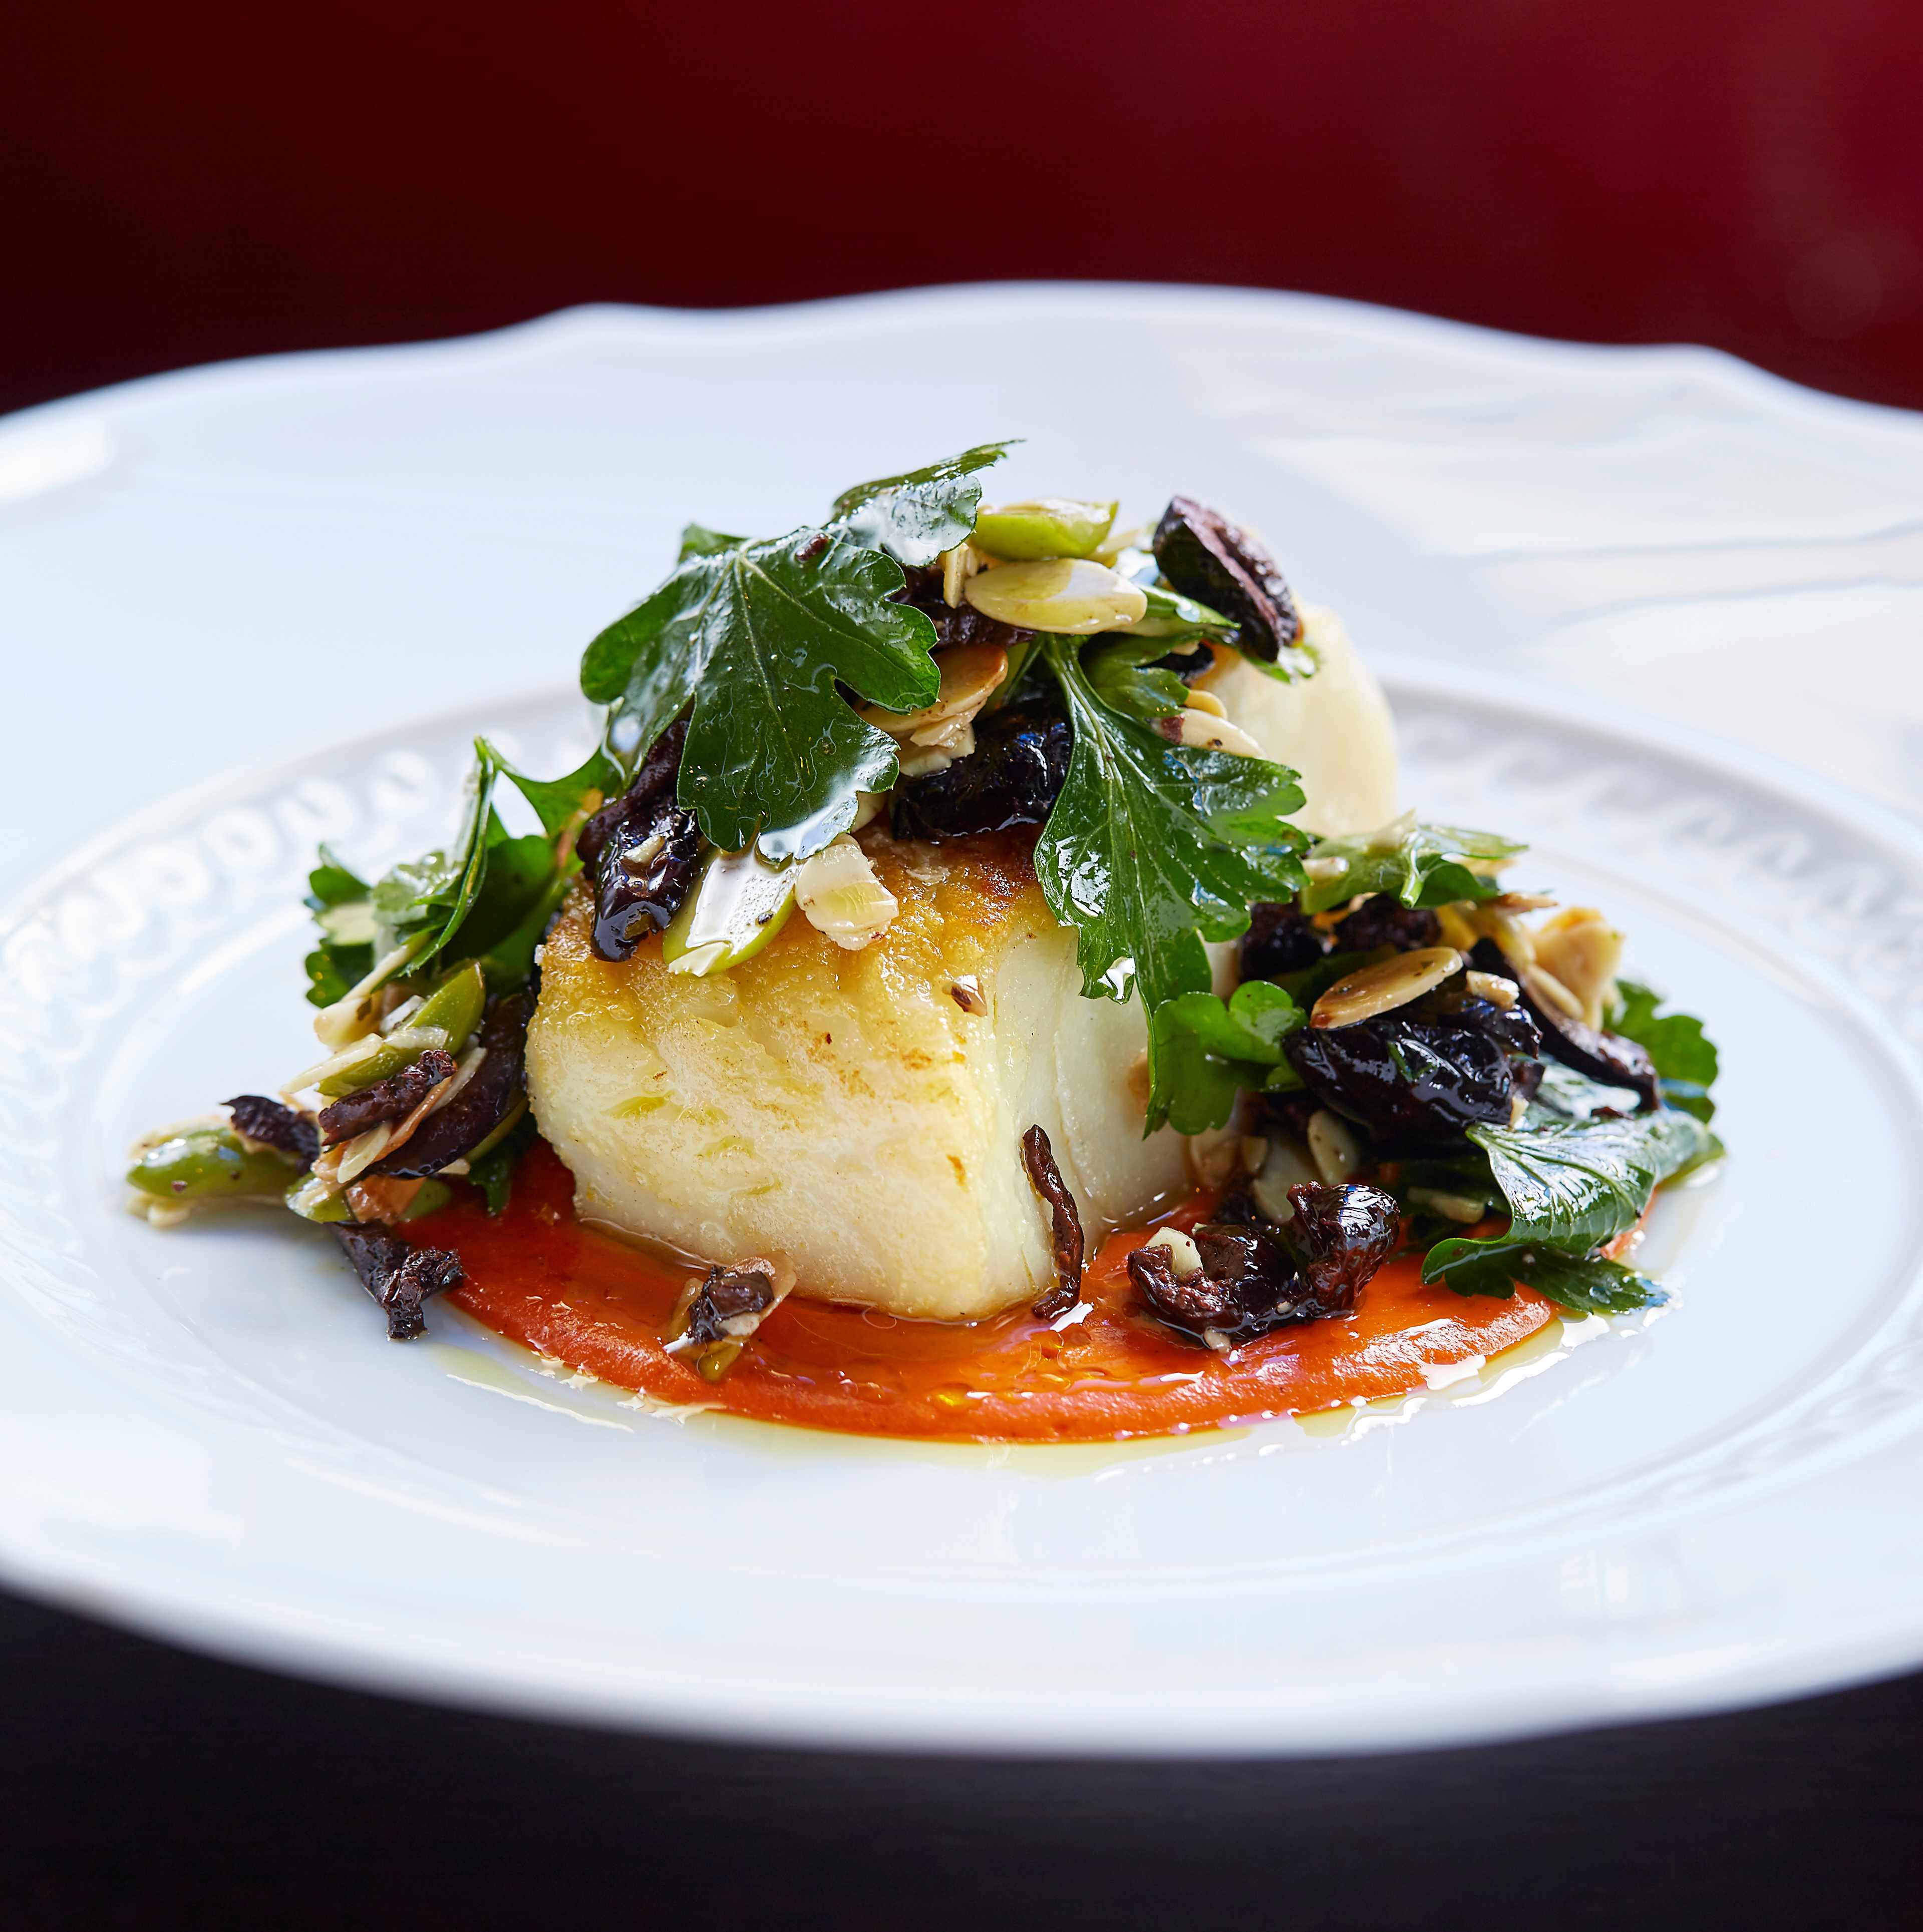 Roasted cod & romesco sauce with olive and almond dressing